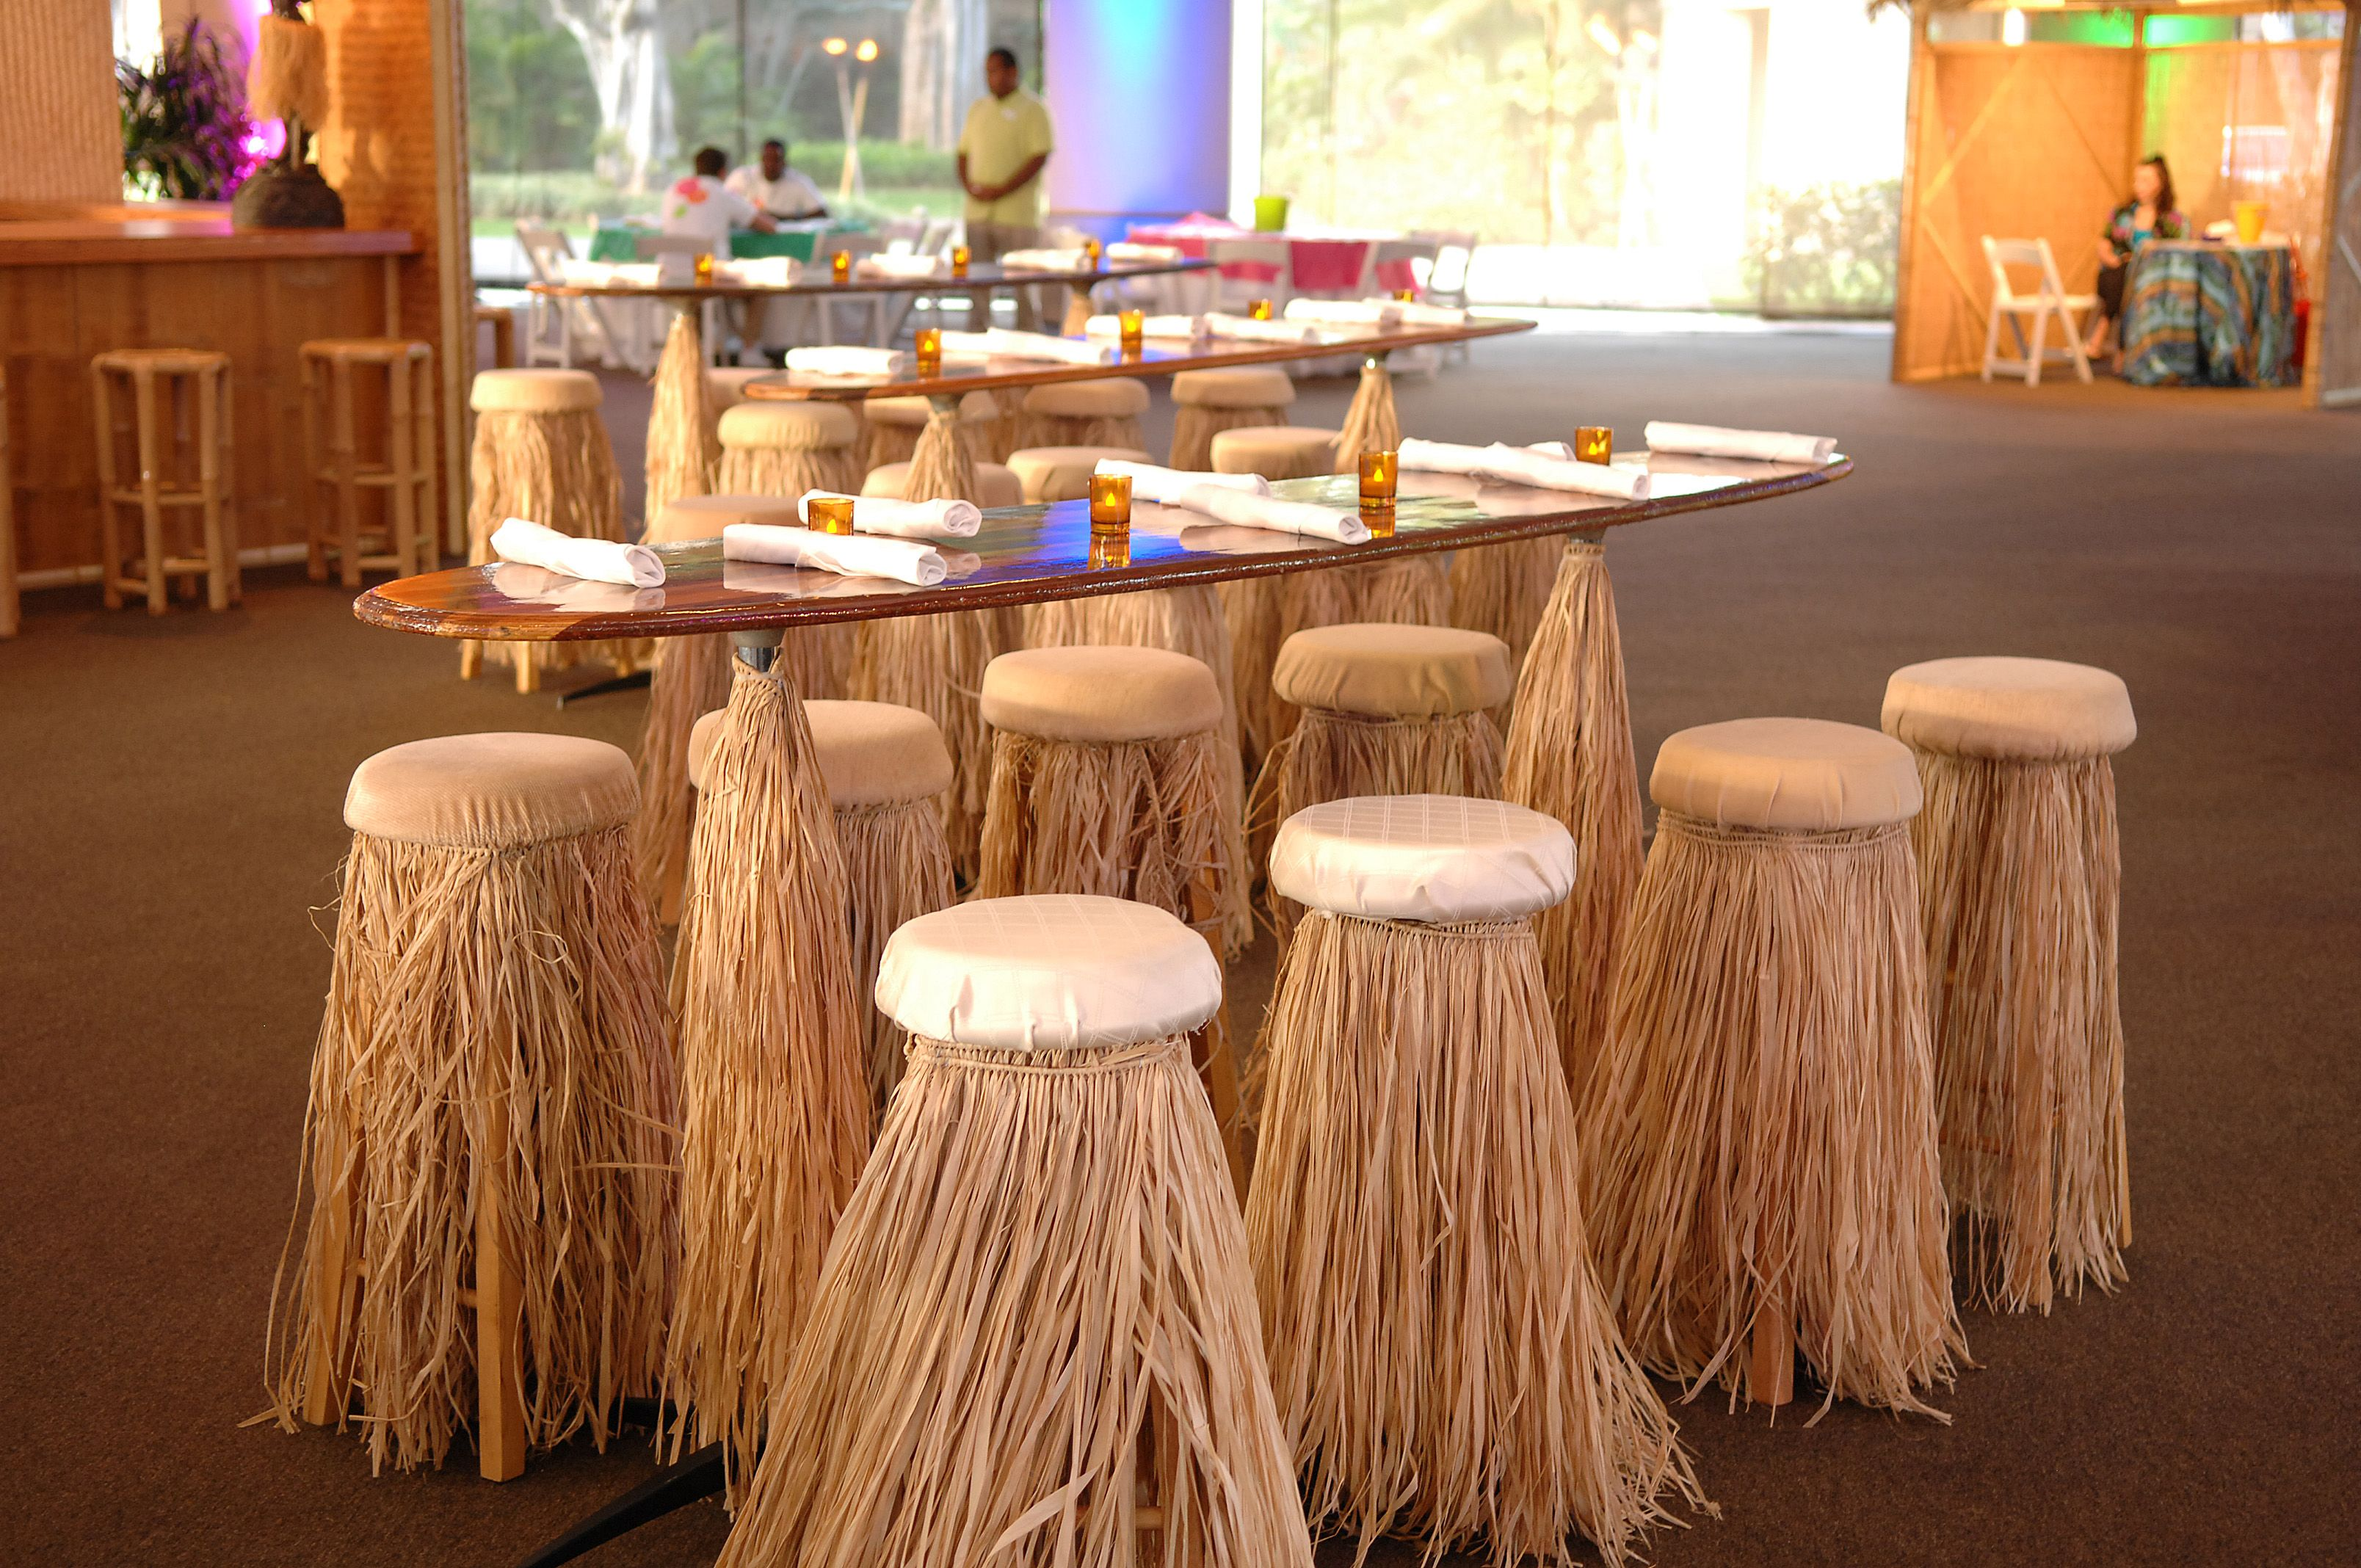 hawaiian chair covers tranquil ease massage parts surf boards as cocktail tables and grass skirts